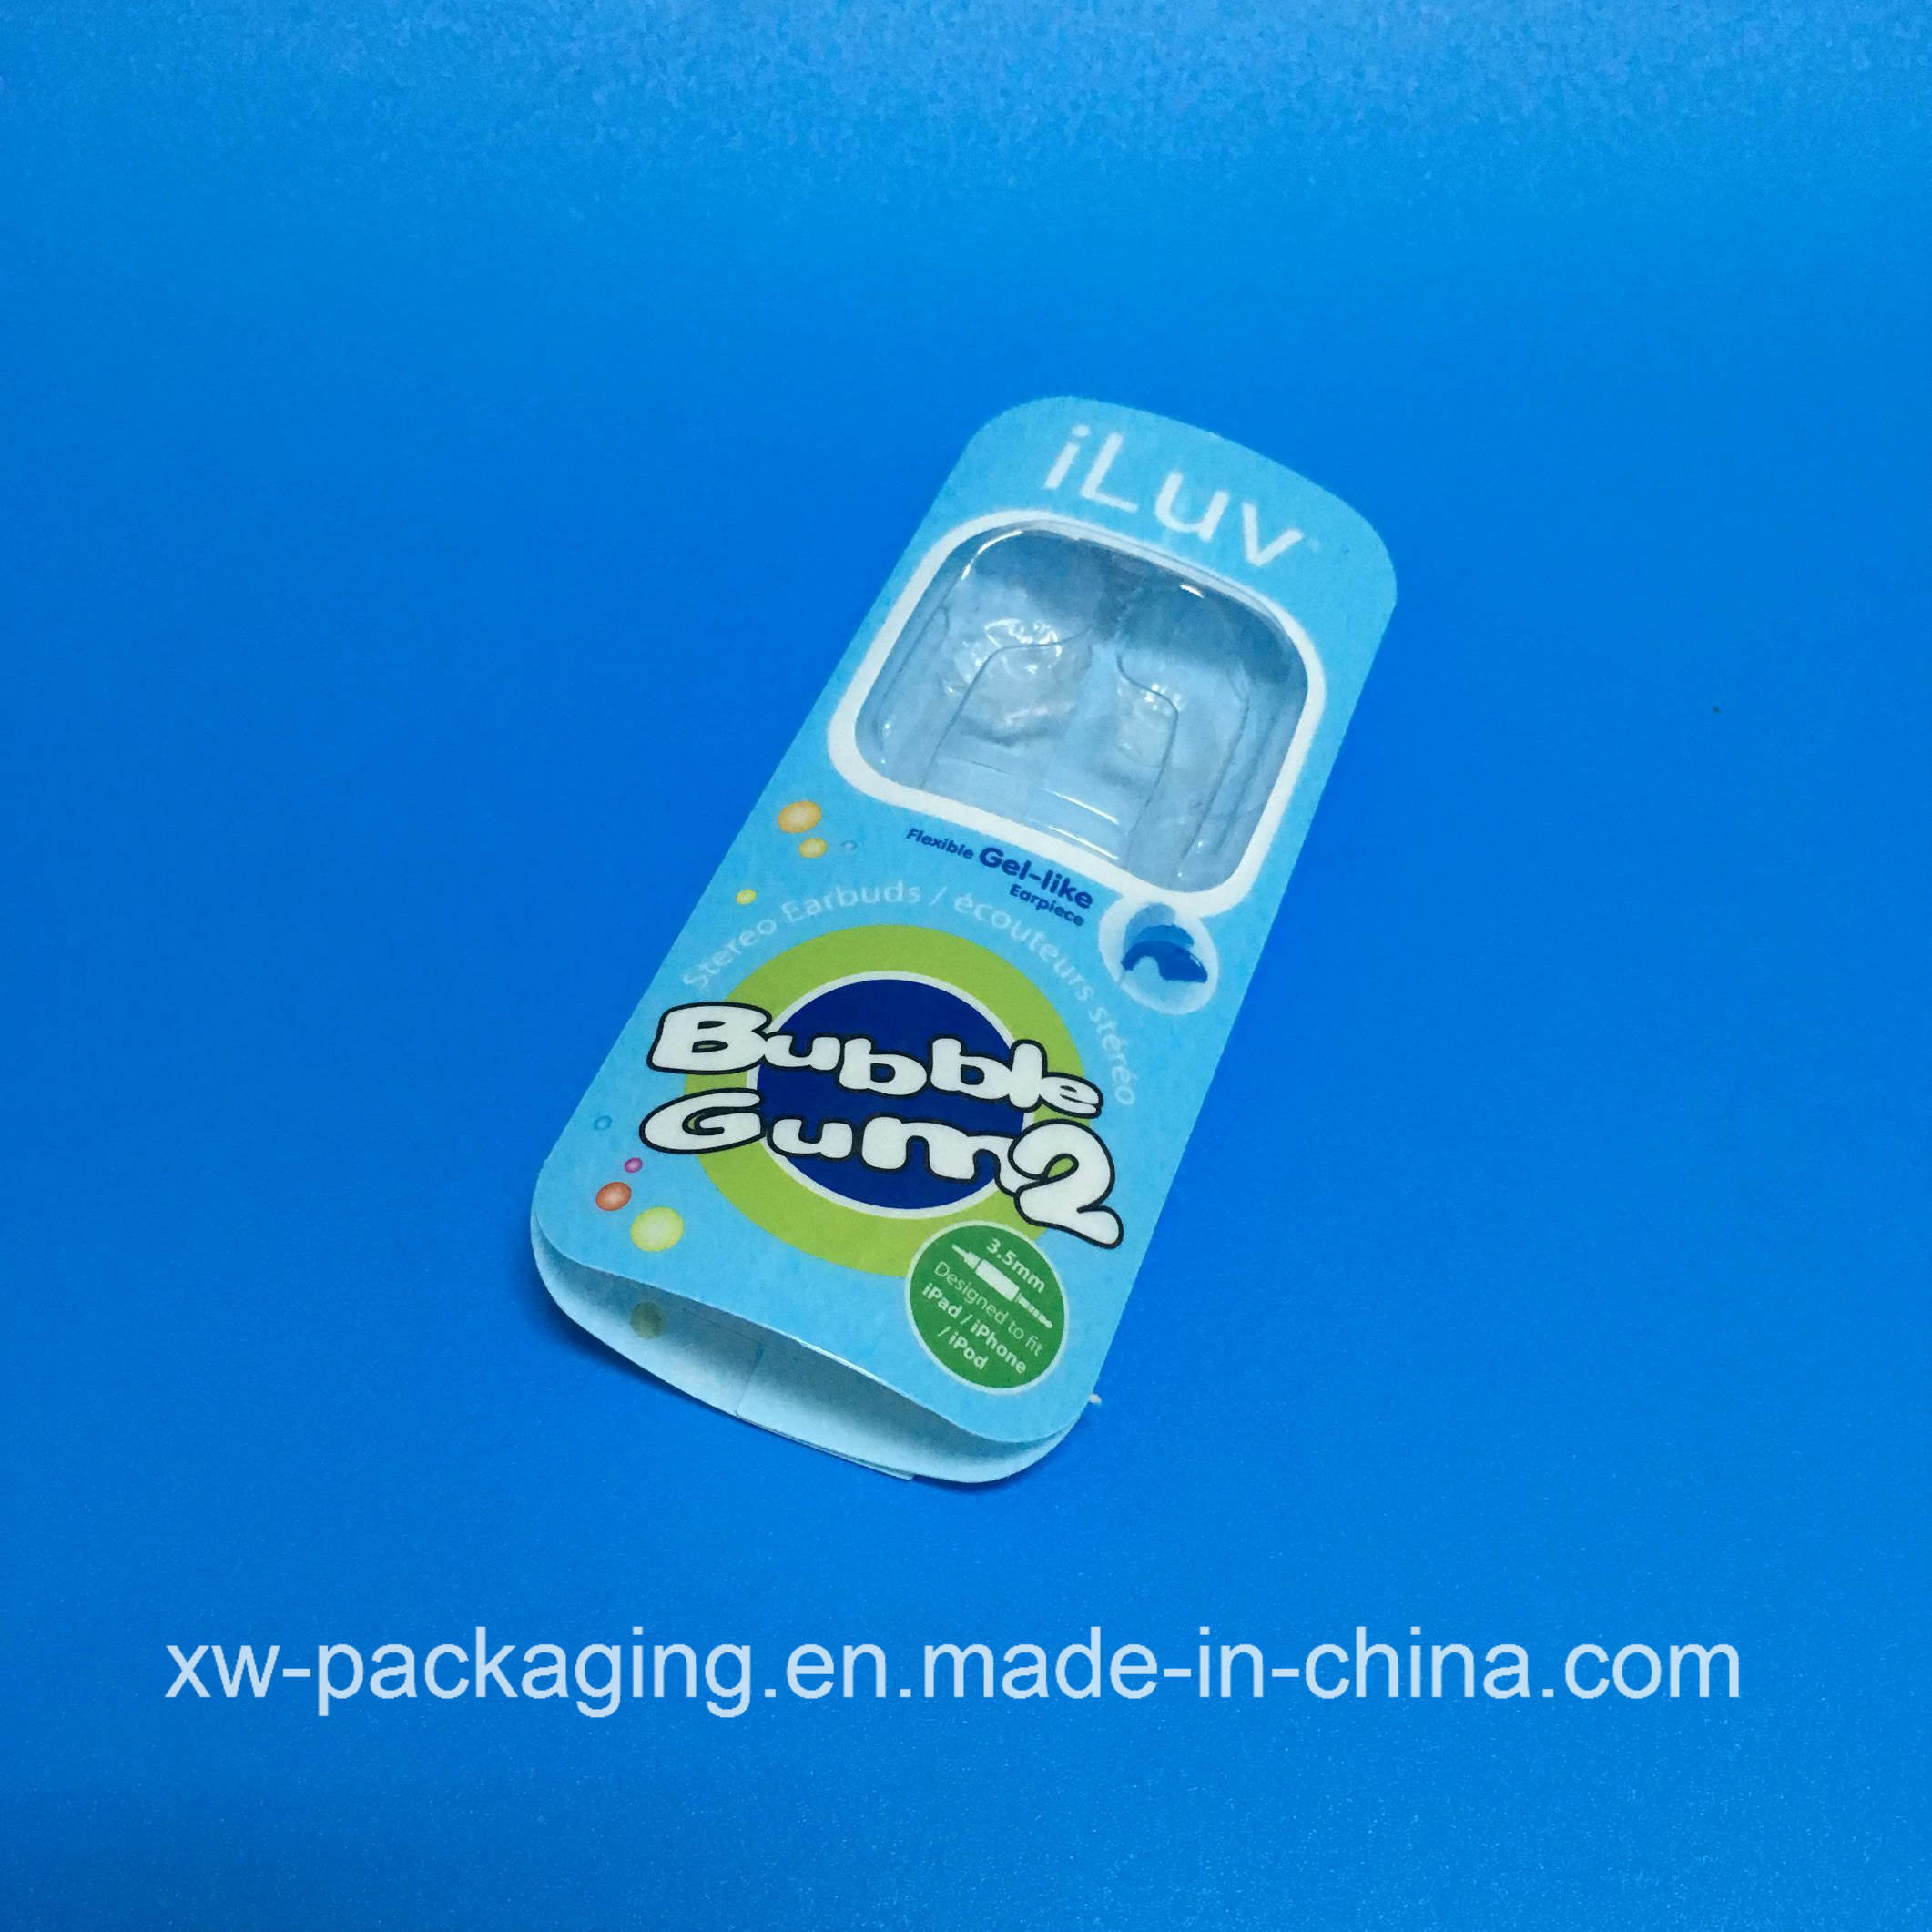 Custommized Transparent Plastic Tray for Phone Headset Products